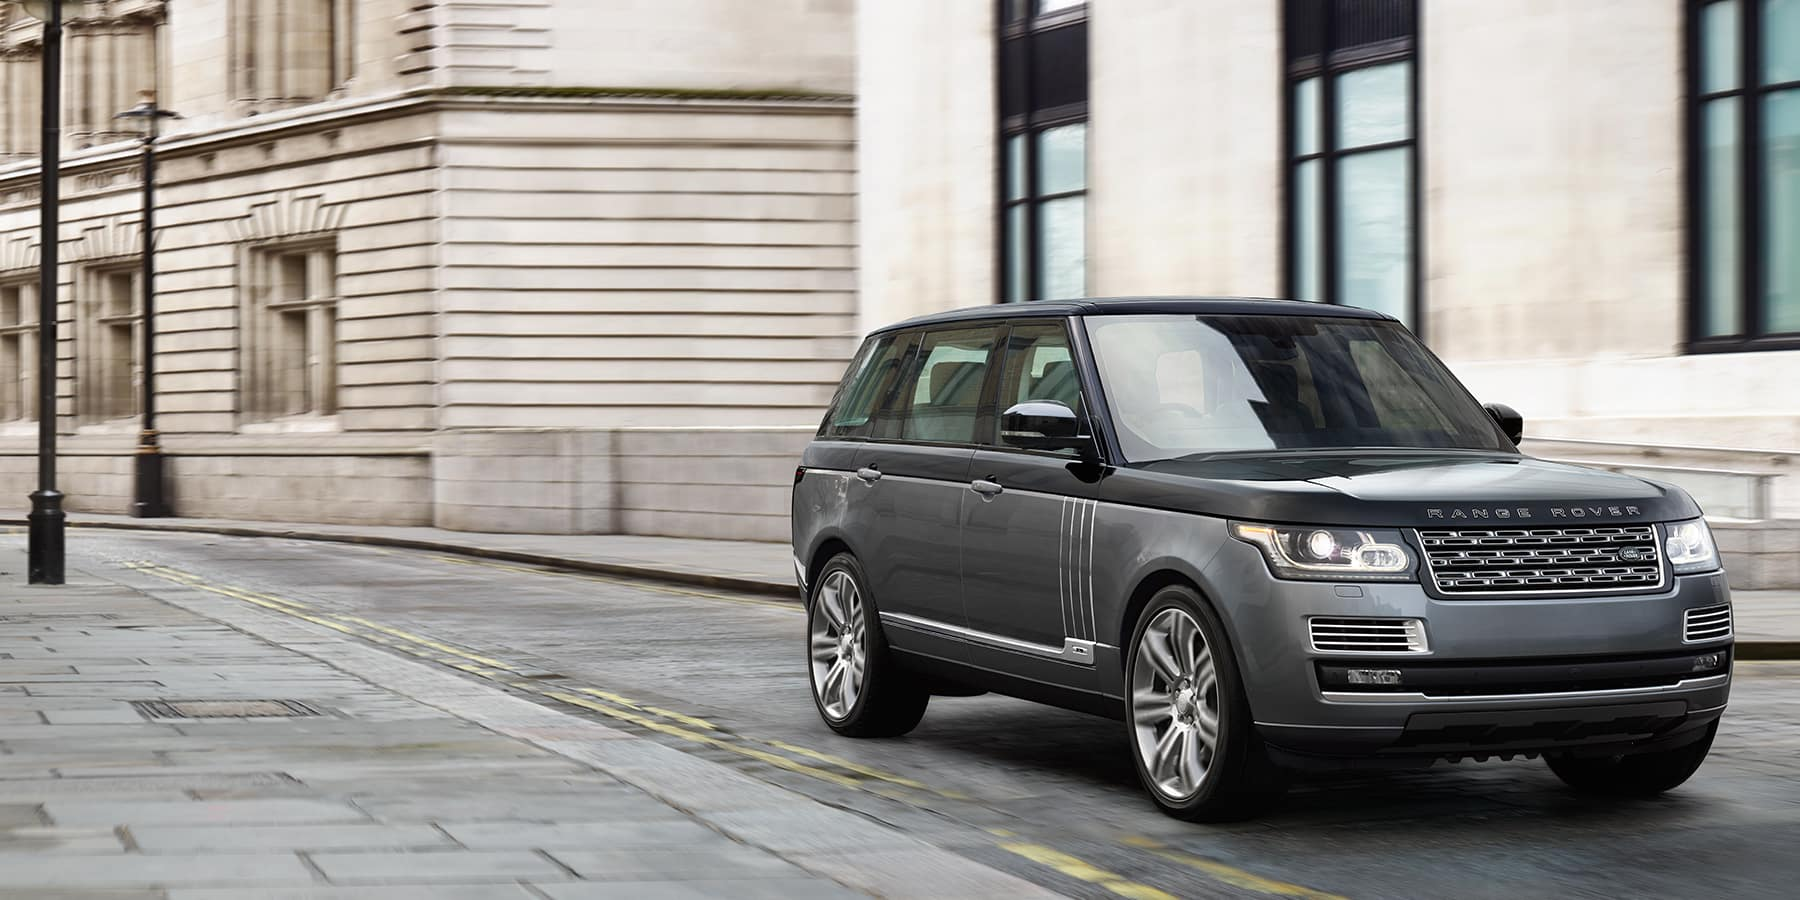 Range Rover Paramus >> Land Rover Paramus | Land Rover and Used Car Dealer in ...